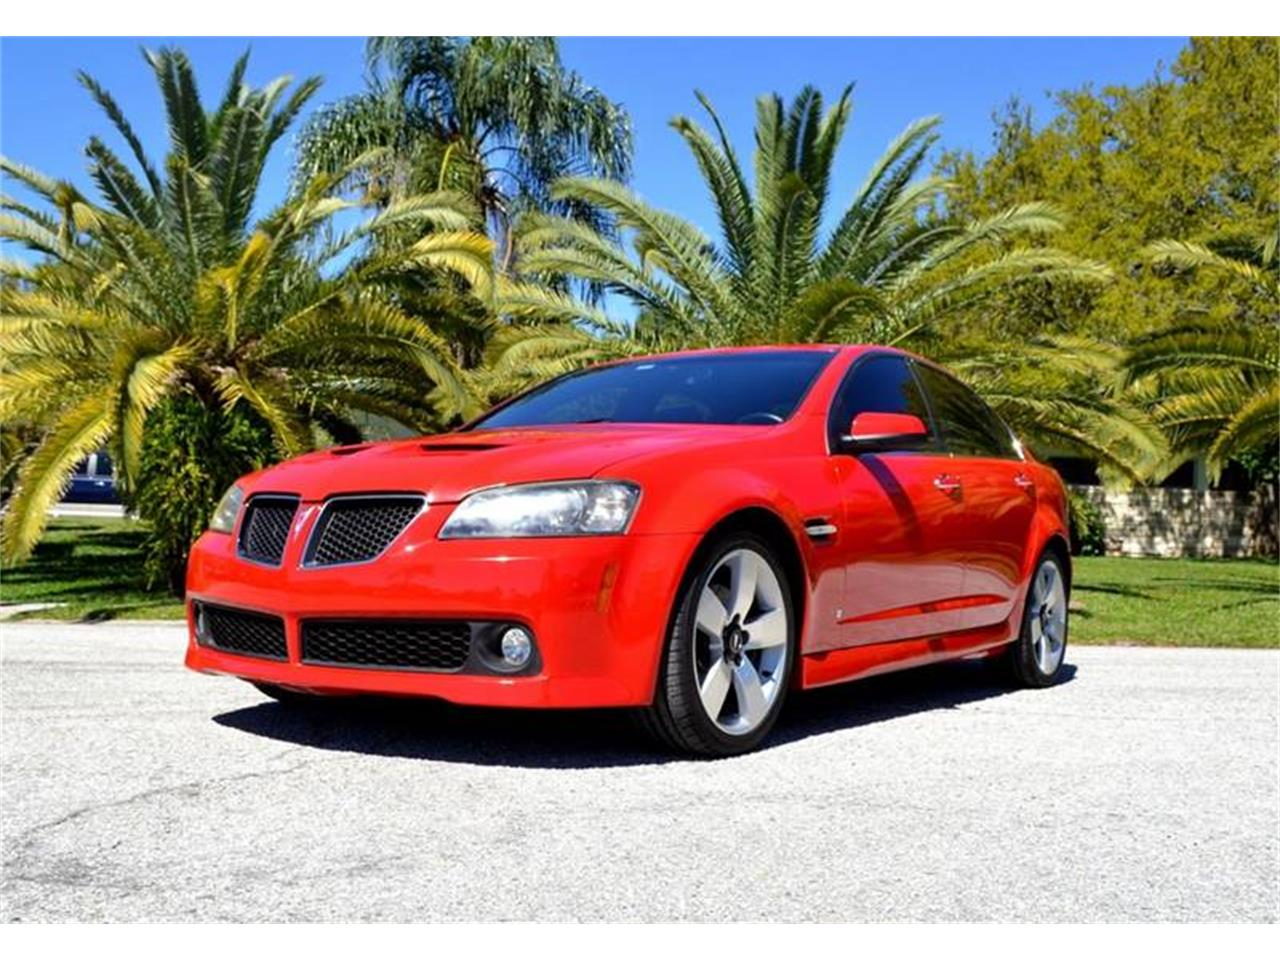 2009 Pontiac G8 for sale in Clearwater, FL – photo 9